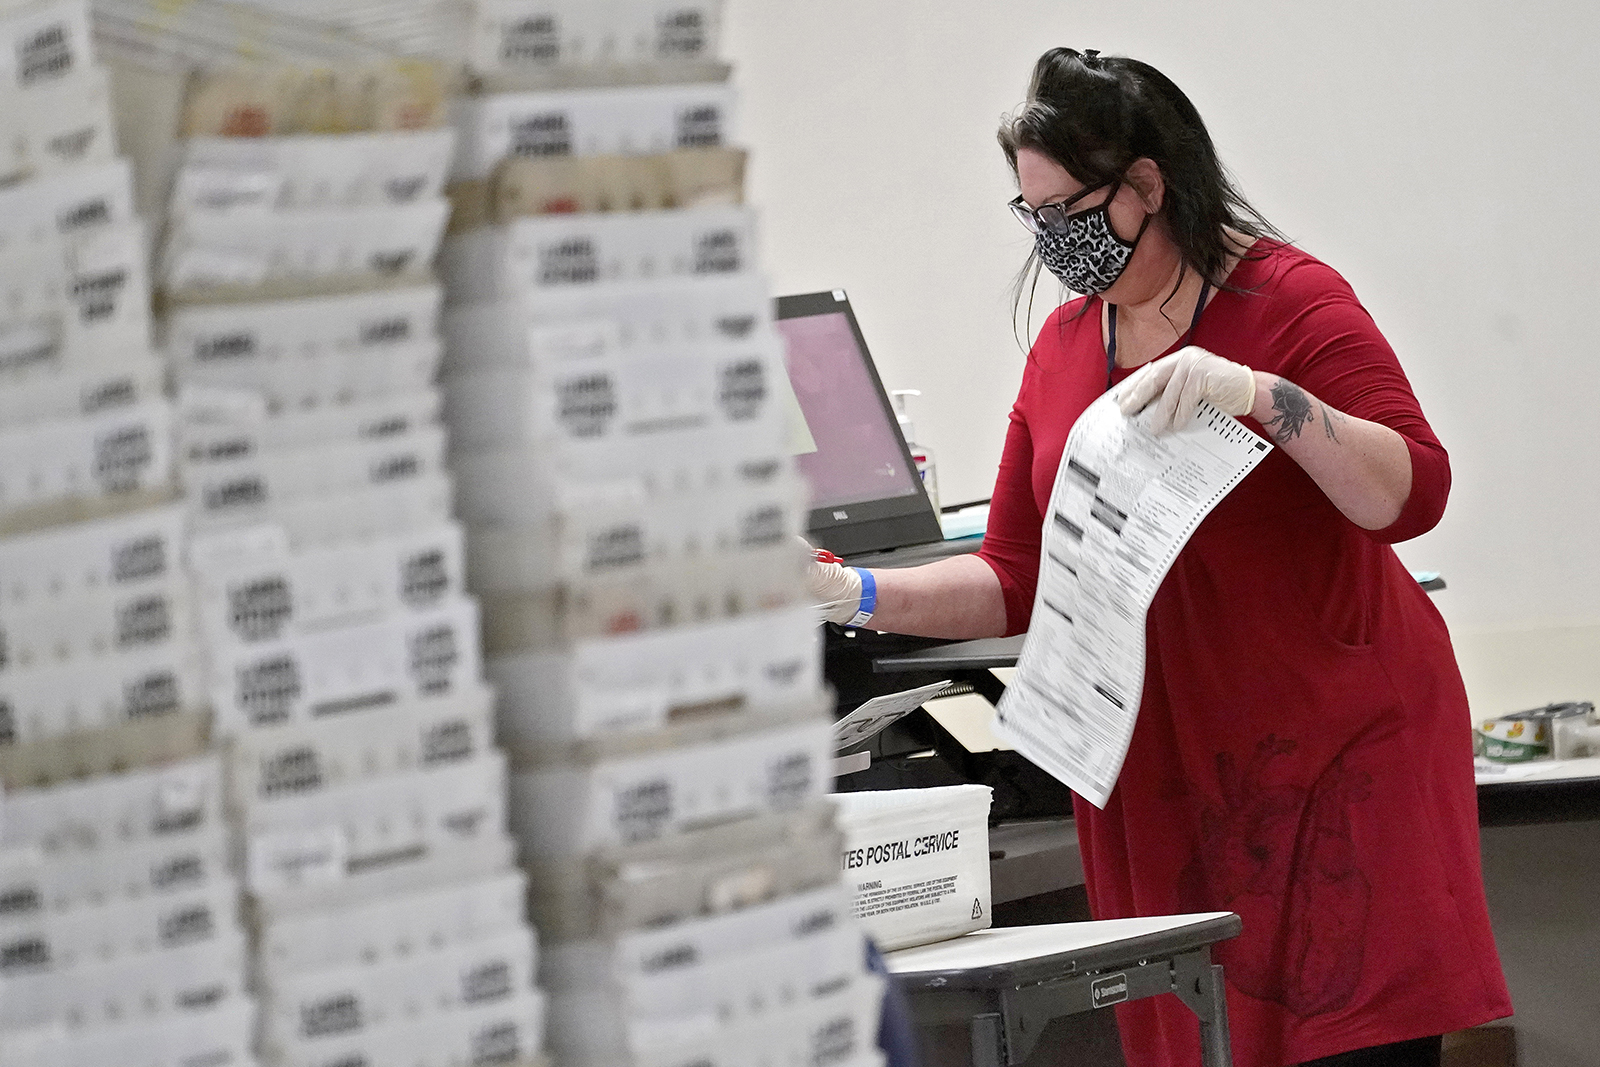 Arizona elections officials continue to count ballots inside the Maricopa County Recorder's Office, Friday, November 6, in Phoenix.